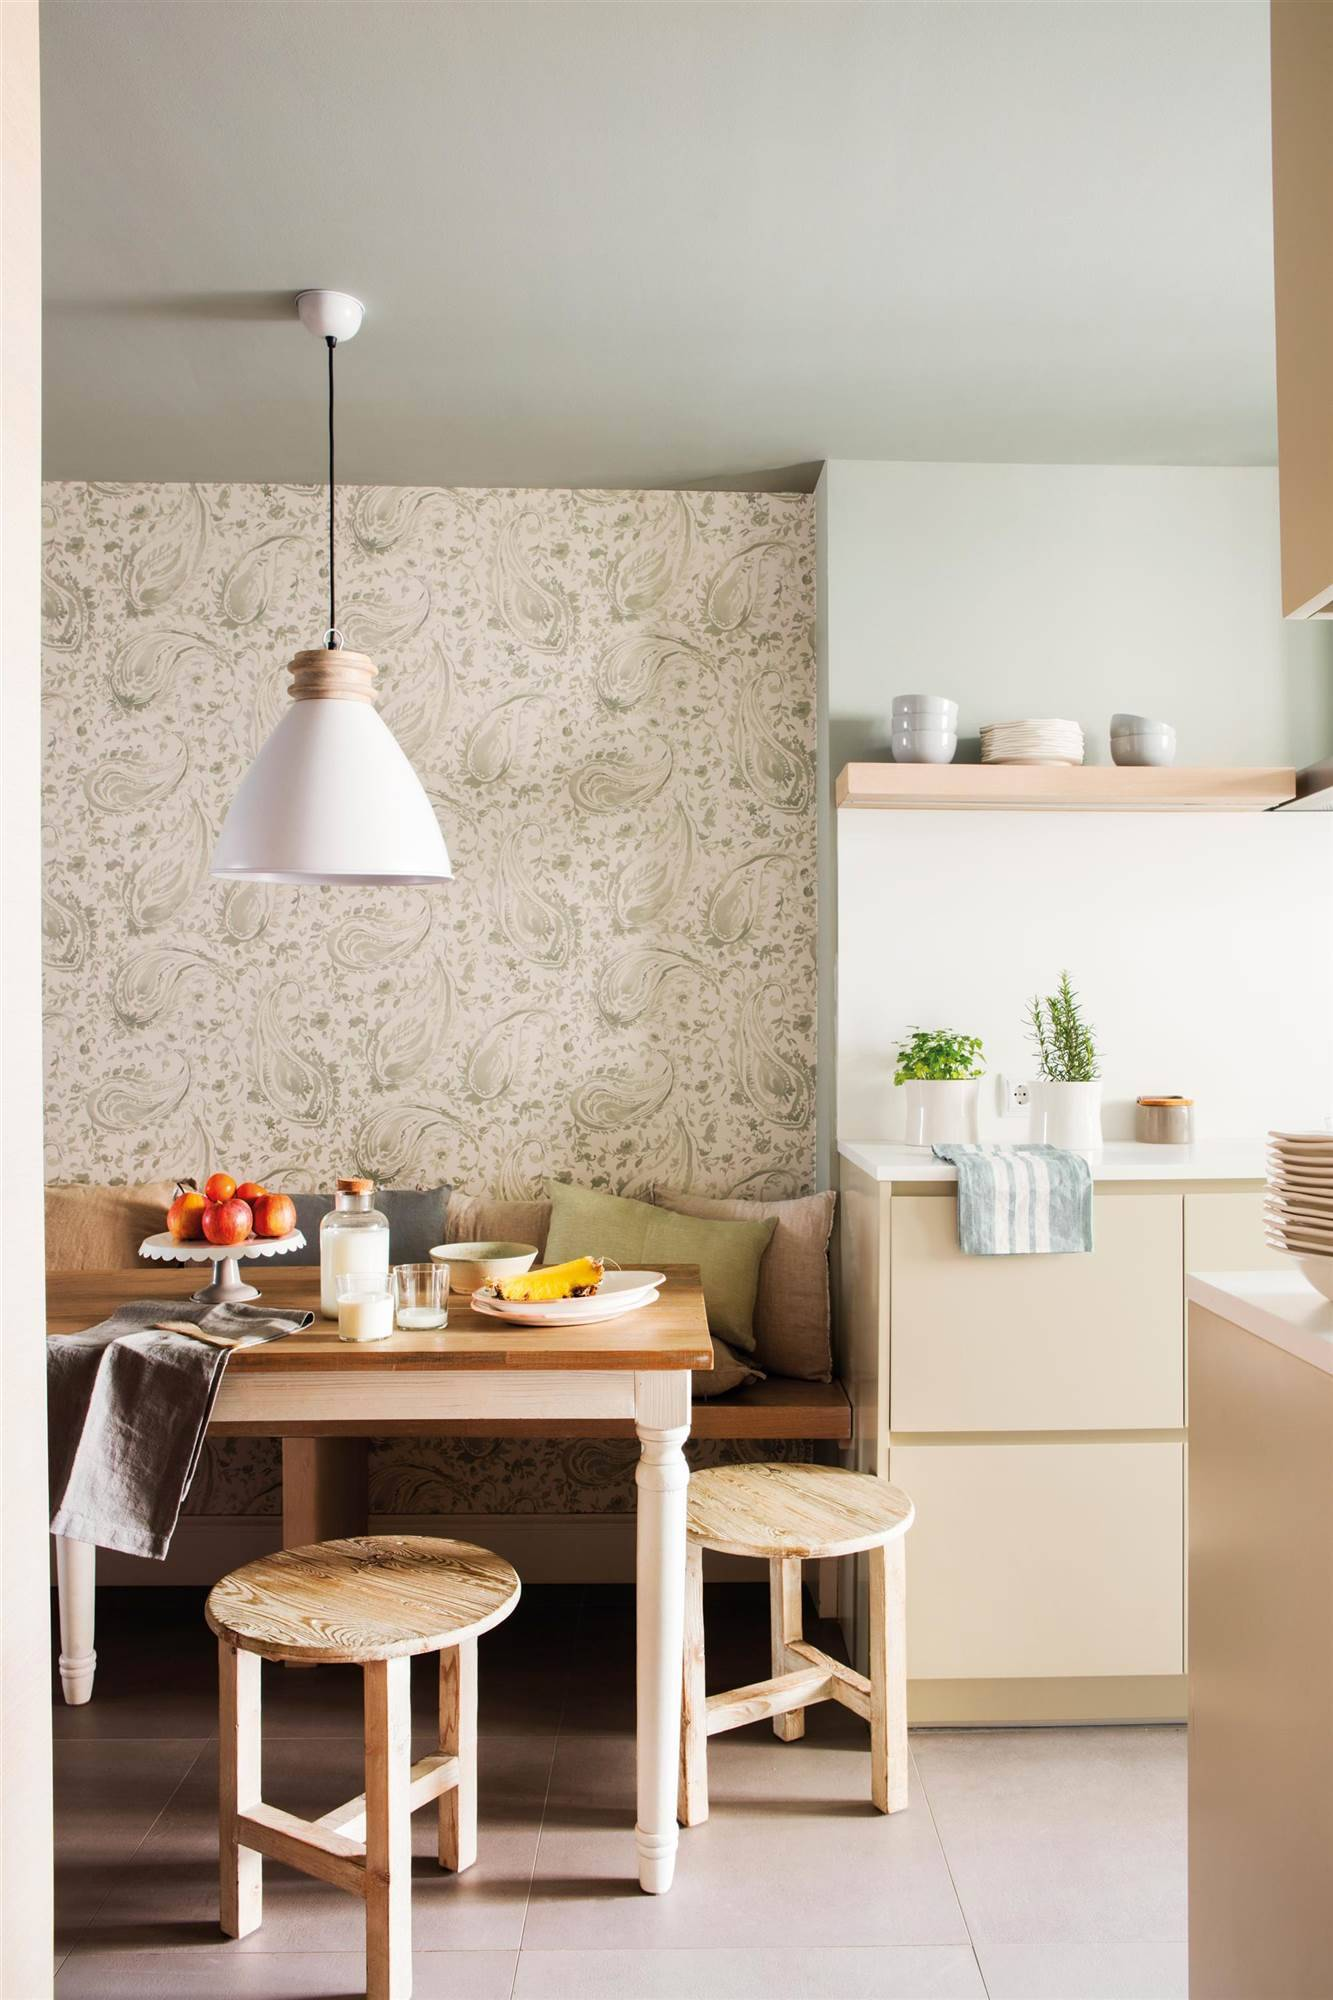 50 cleaning tricks kitchen wallpaper 00451954.  35. If the paper is not washable ...